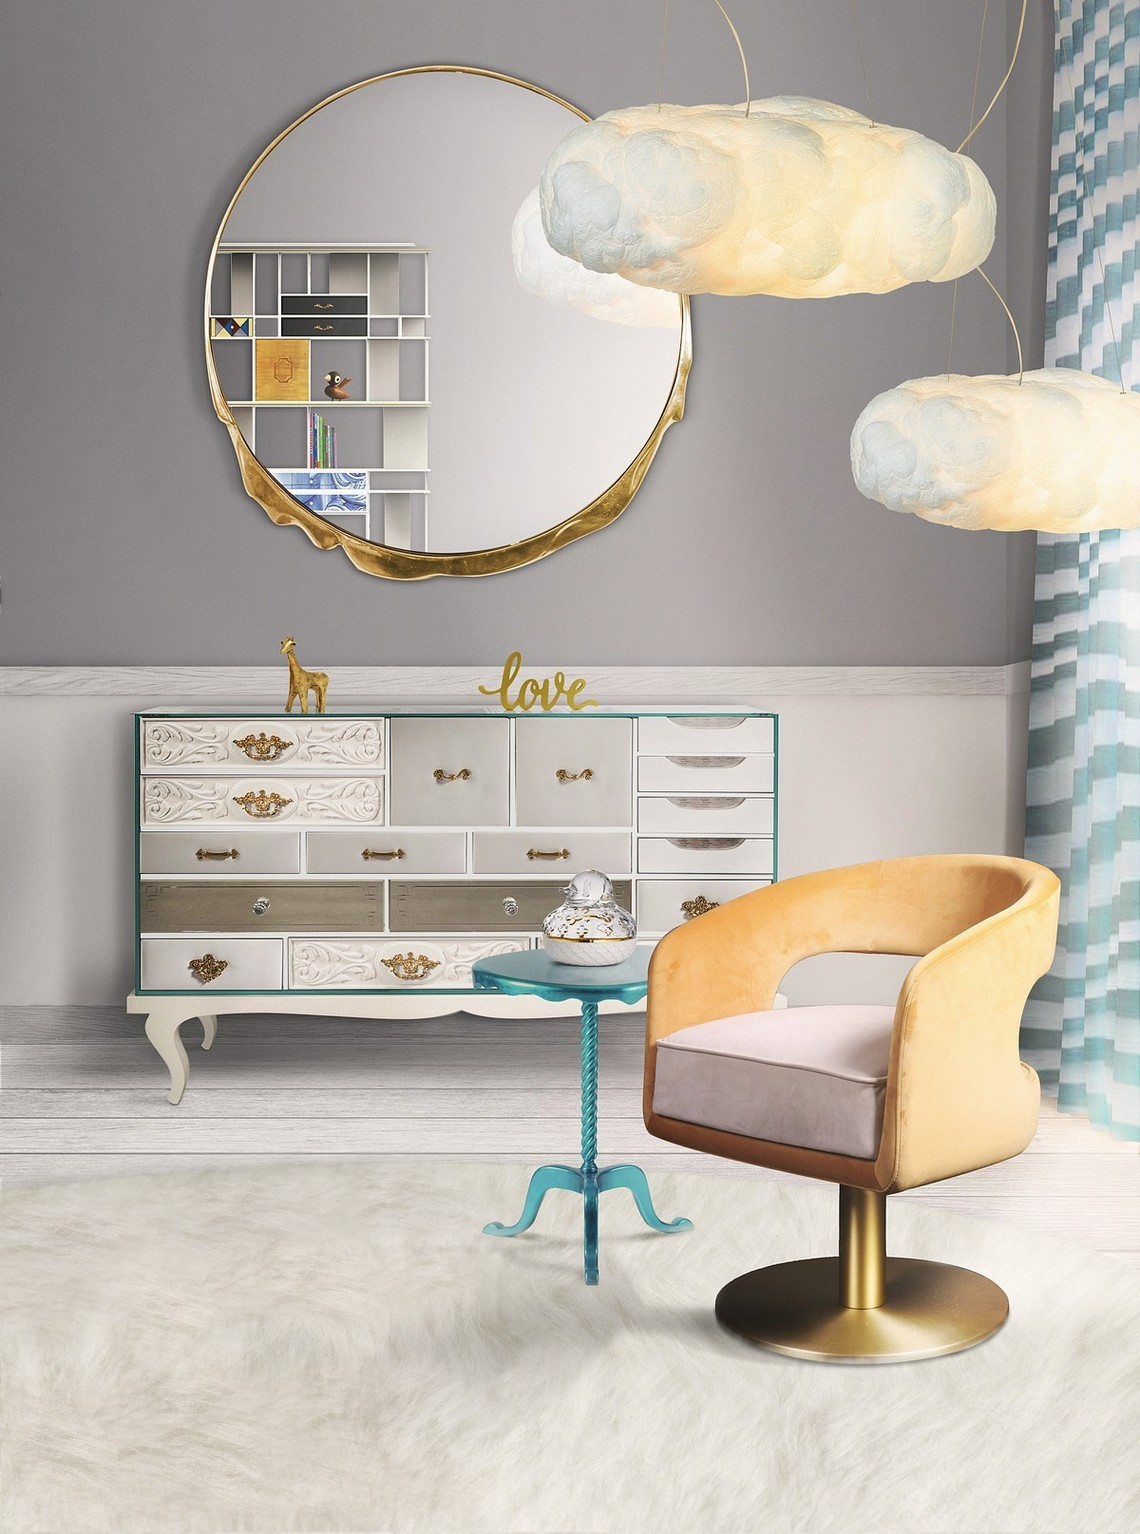 Modern Mirrors To Match Your Living Room Sideboard modern mirrors Modern Mirrors To Match Your Sideboard magma